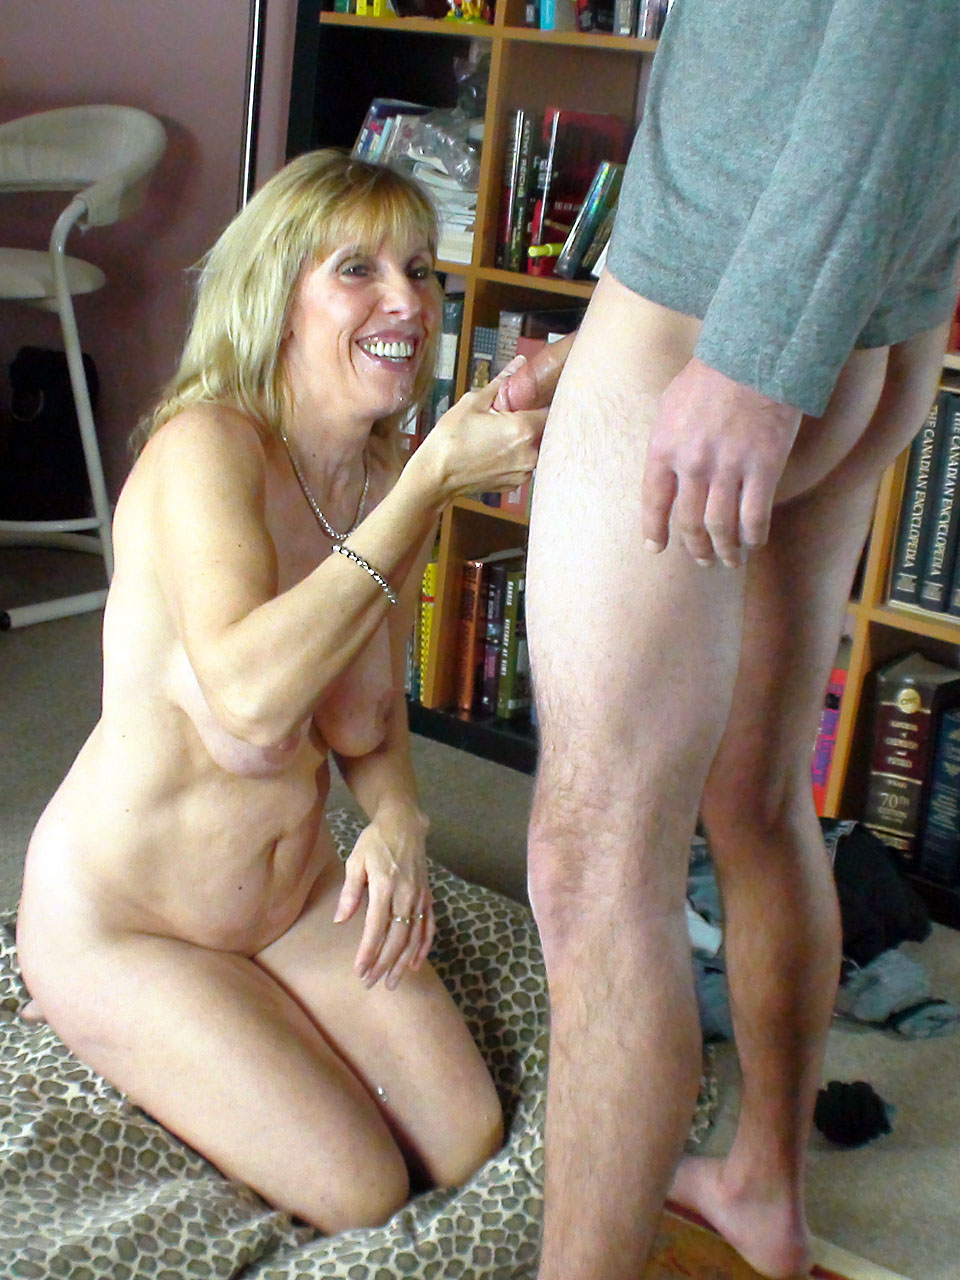 A boy invited to fuck the wife - 1 part 9